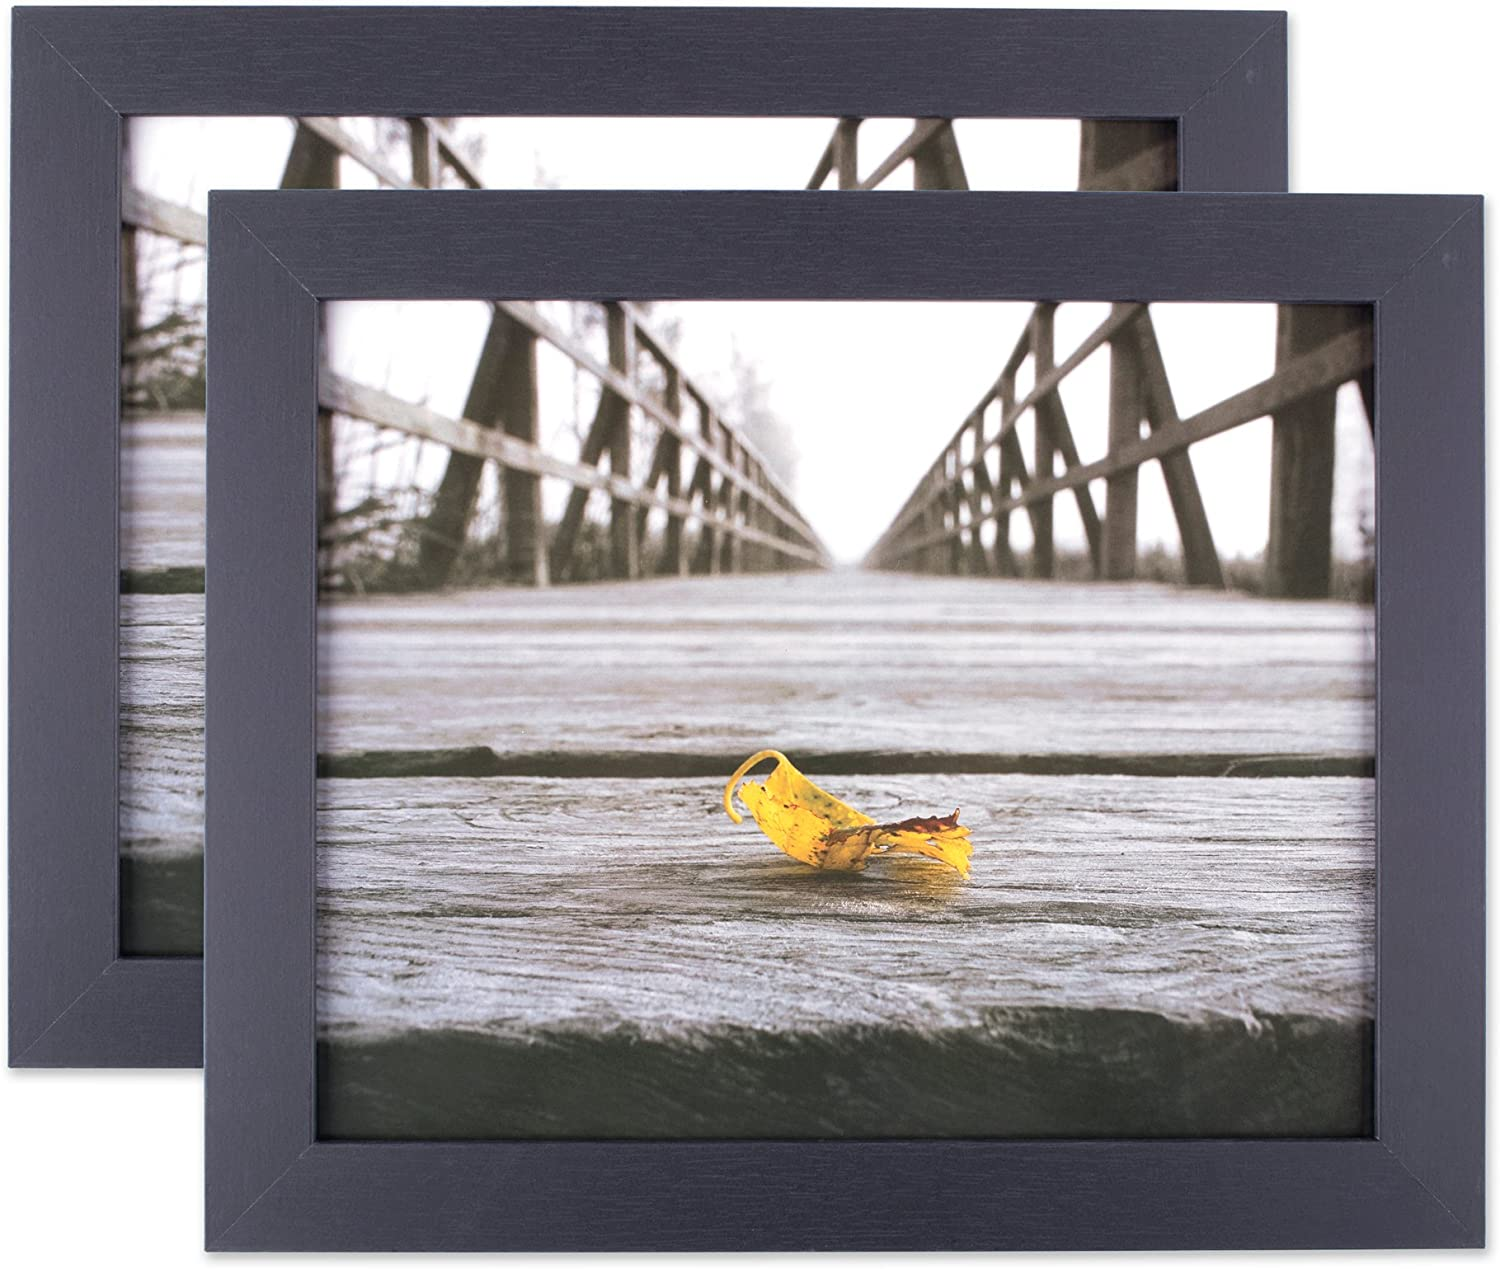 DII Black Picture Frame with Protective Glass Covering, Set of 2-for Wall or Desk Display with Hanging Hardware Included, 8x10, Black, 2 Set of